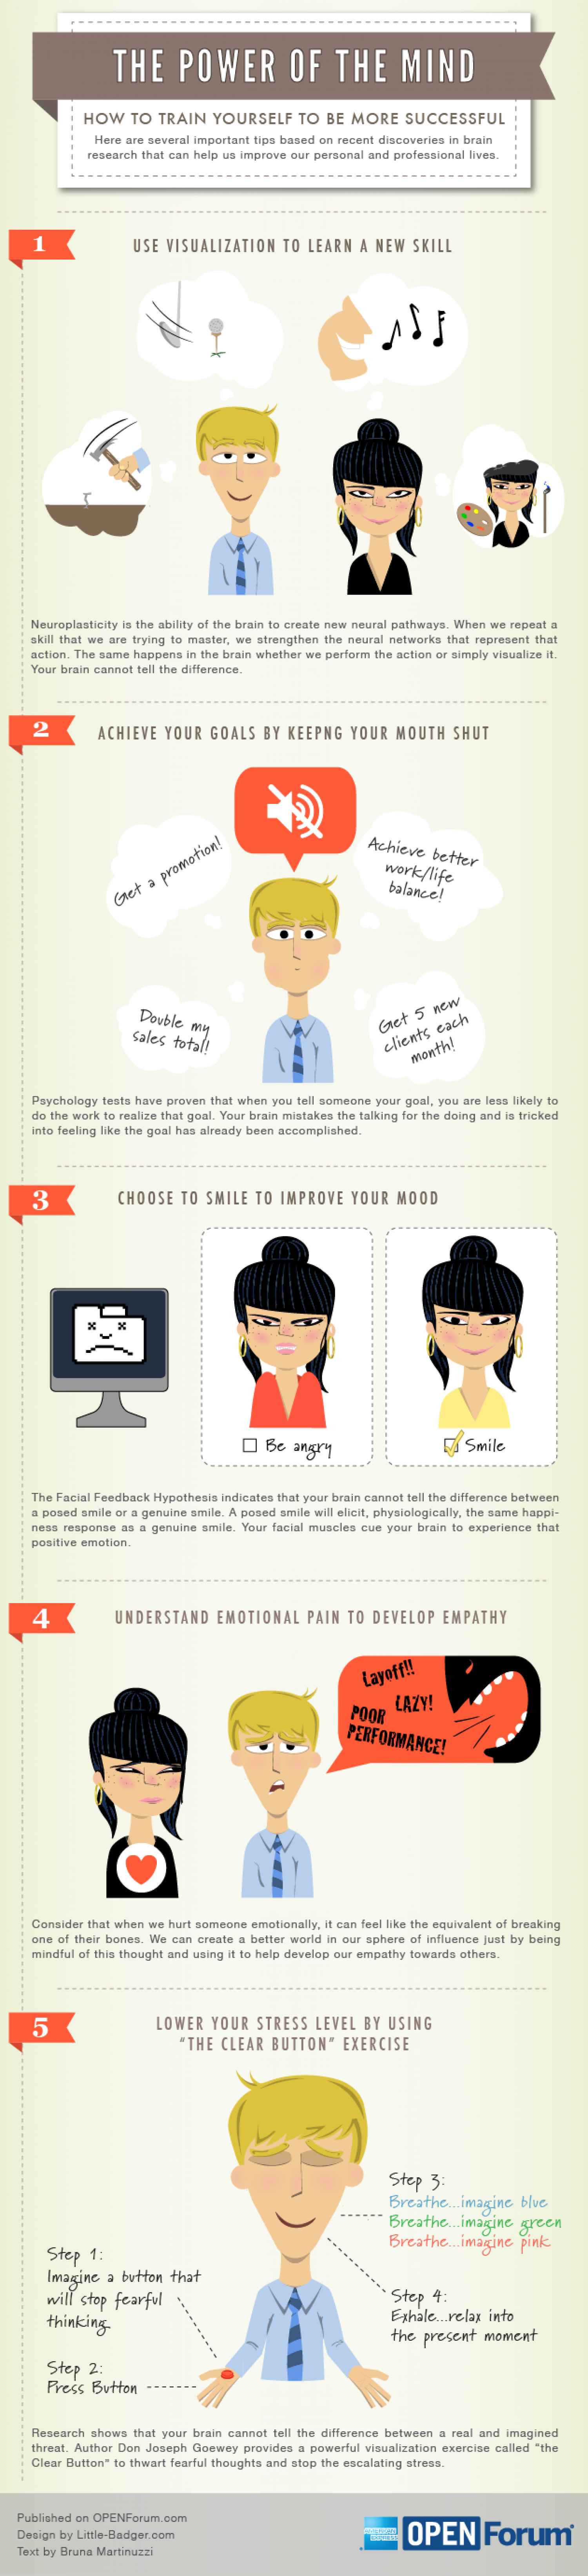 Power of the Mind: 5 Ways Brain Research Can Help Your Business Infographic